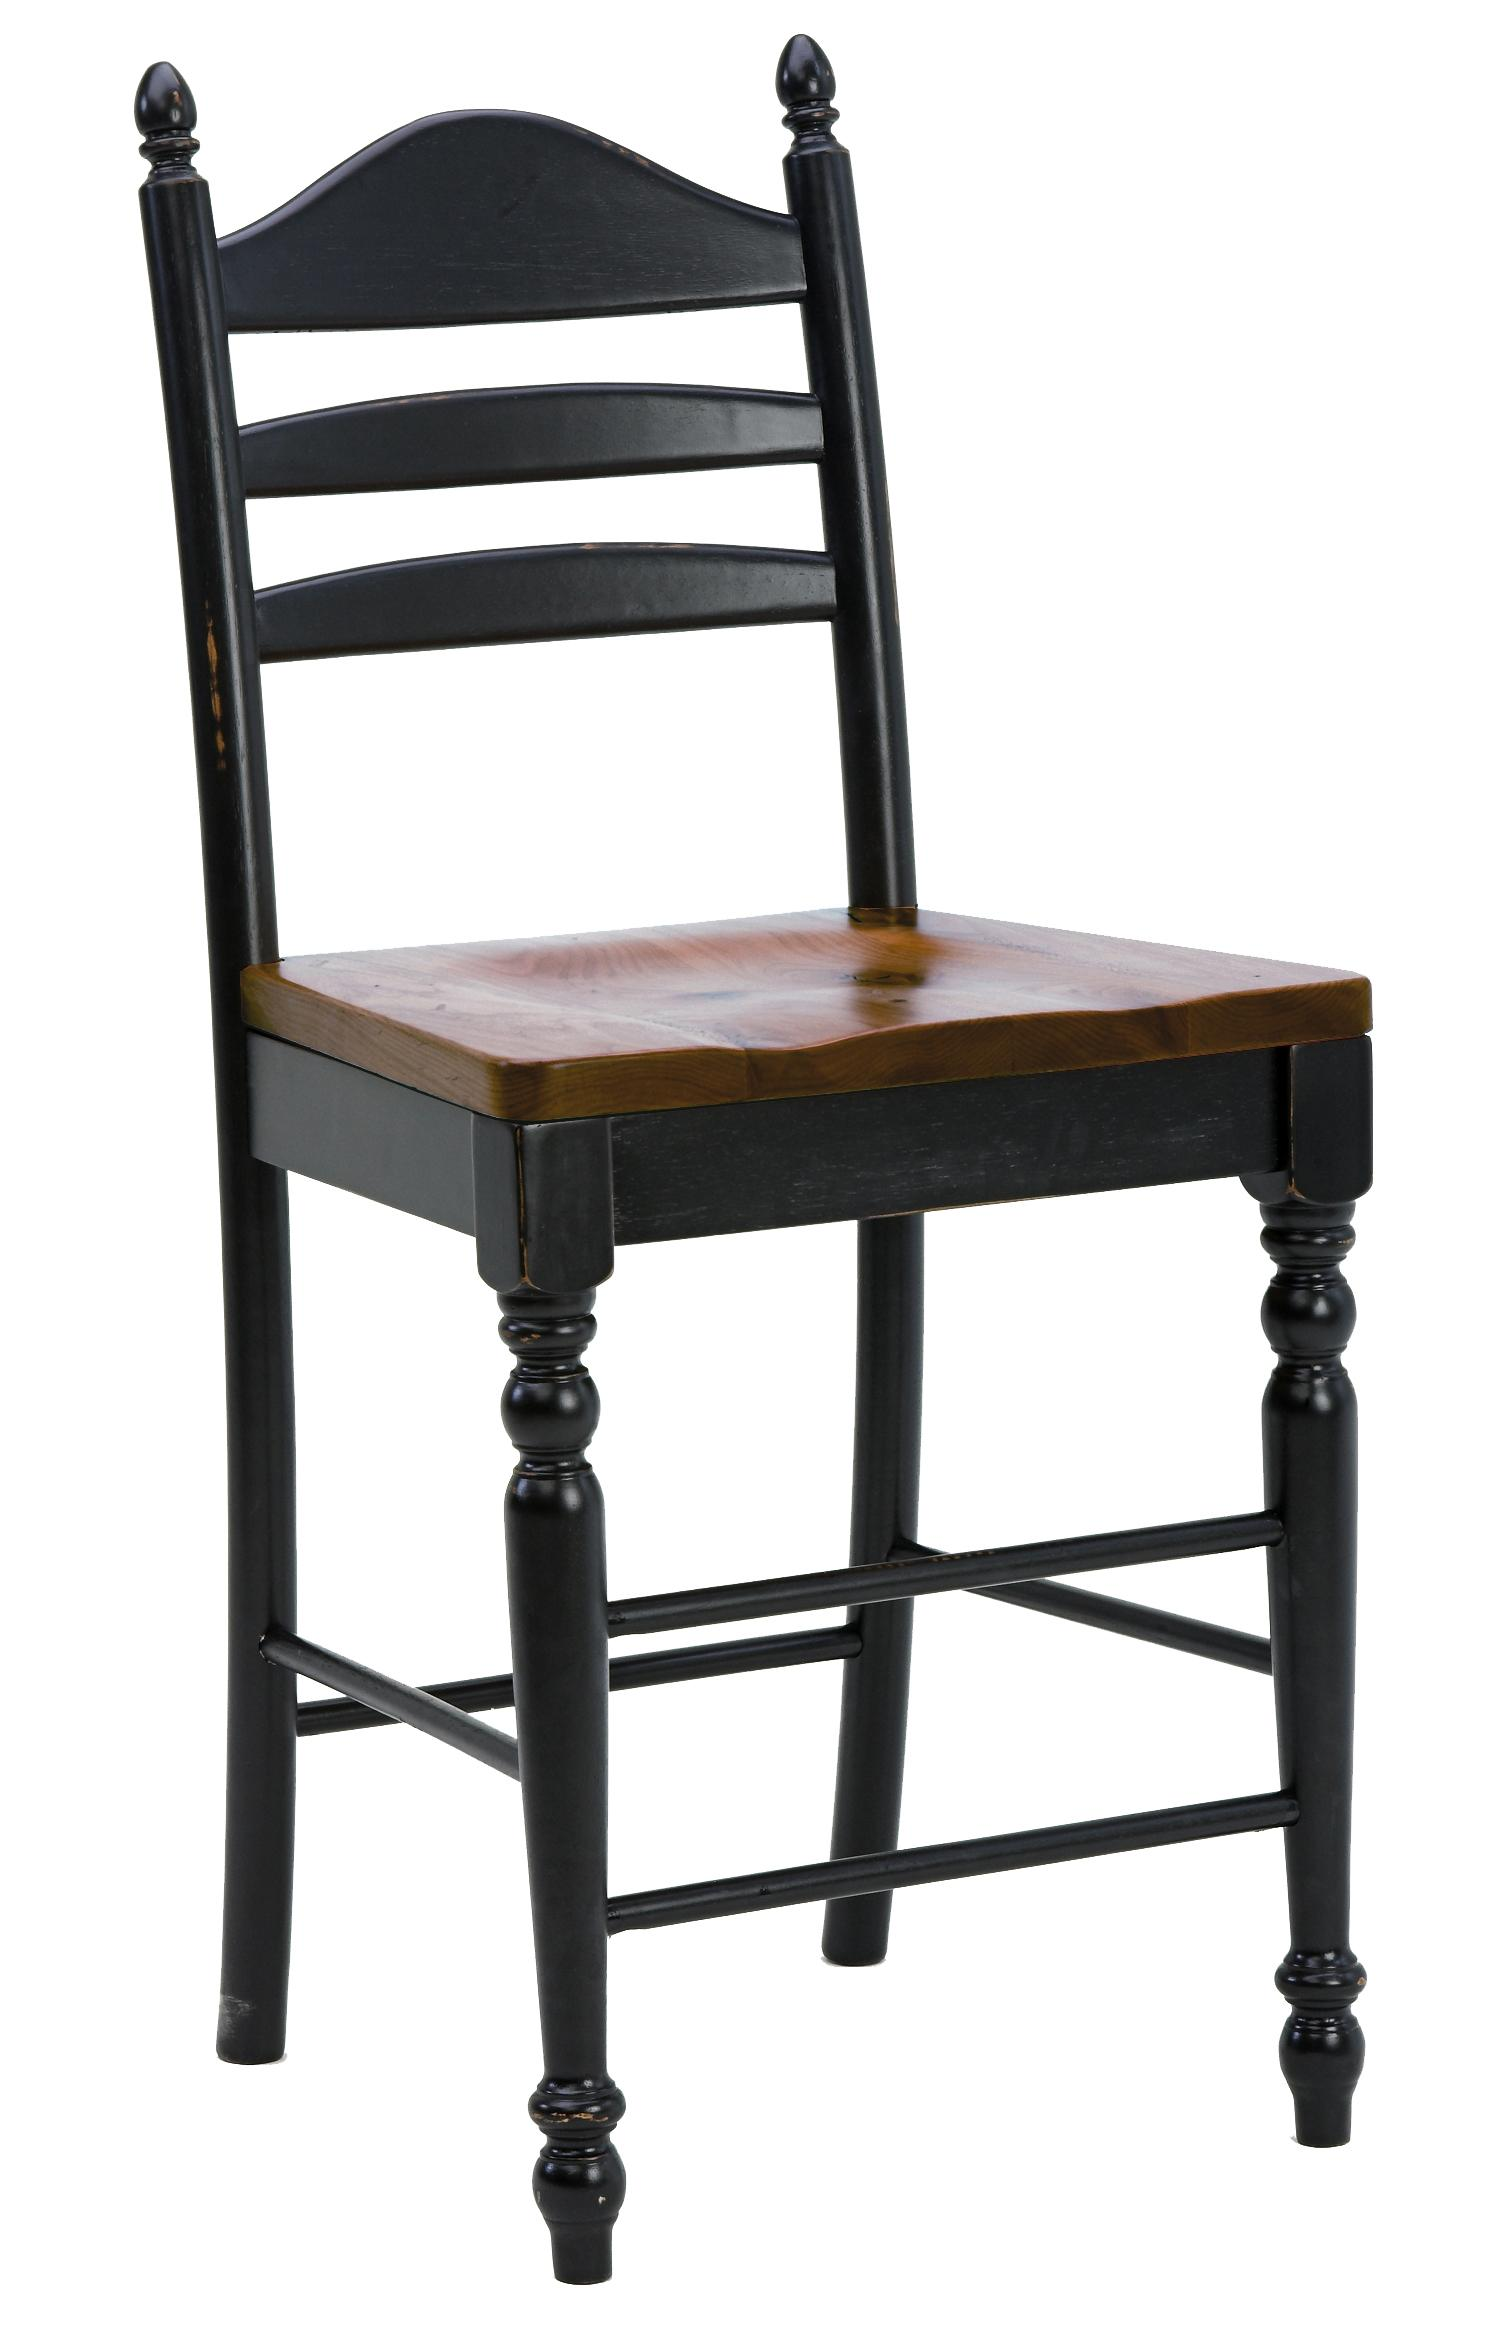 "Intercon Hillside Village 30"" Ladder Back Bar Stool - Item Number: HV-BS-489W-BCN-K30"